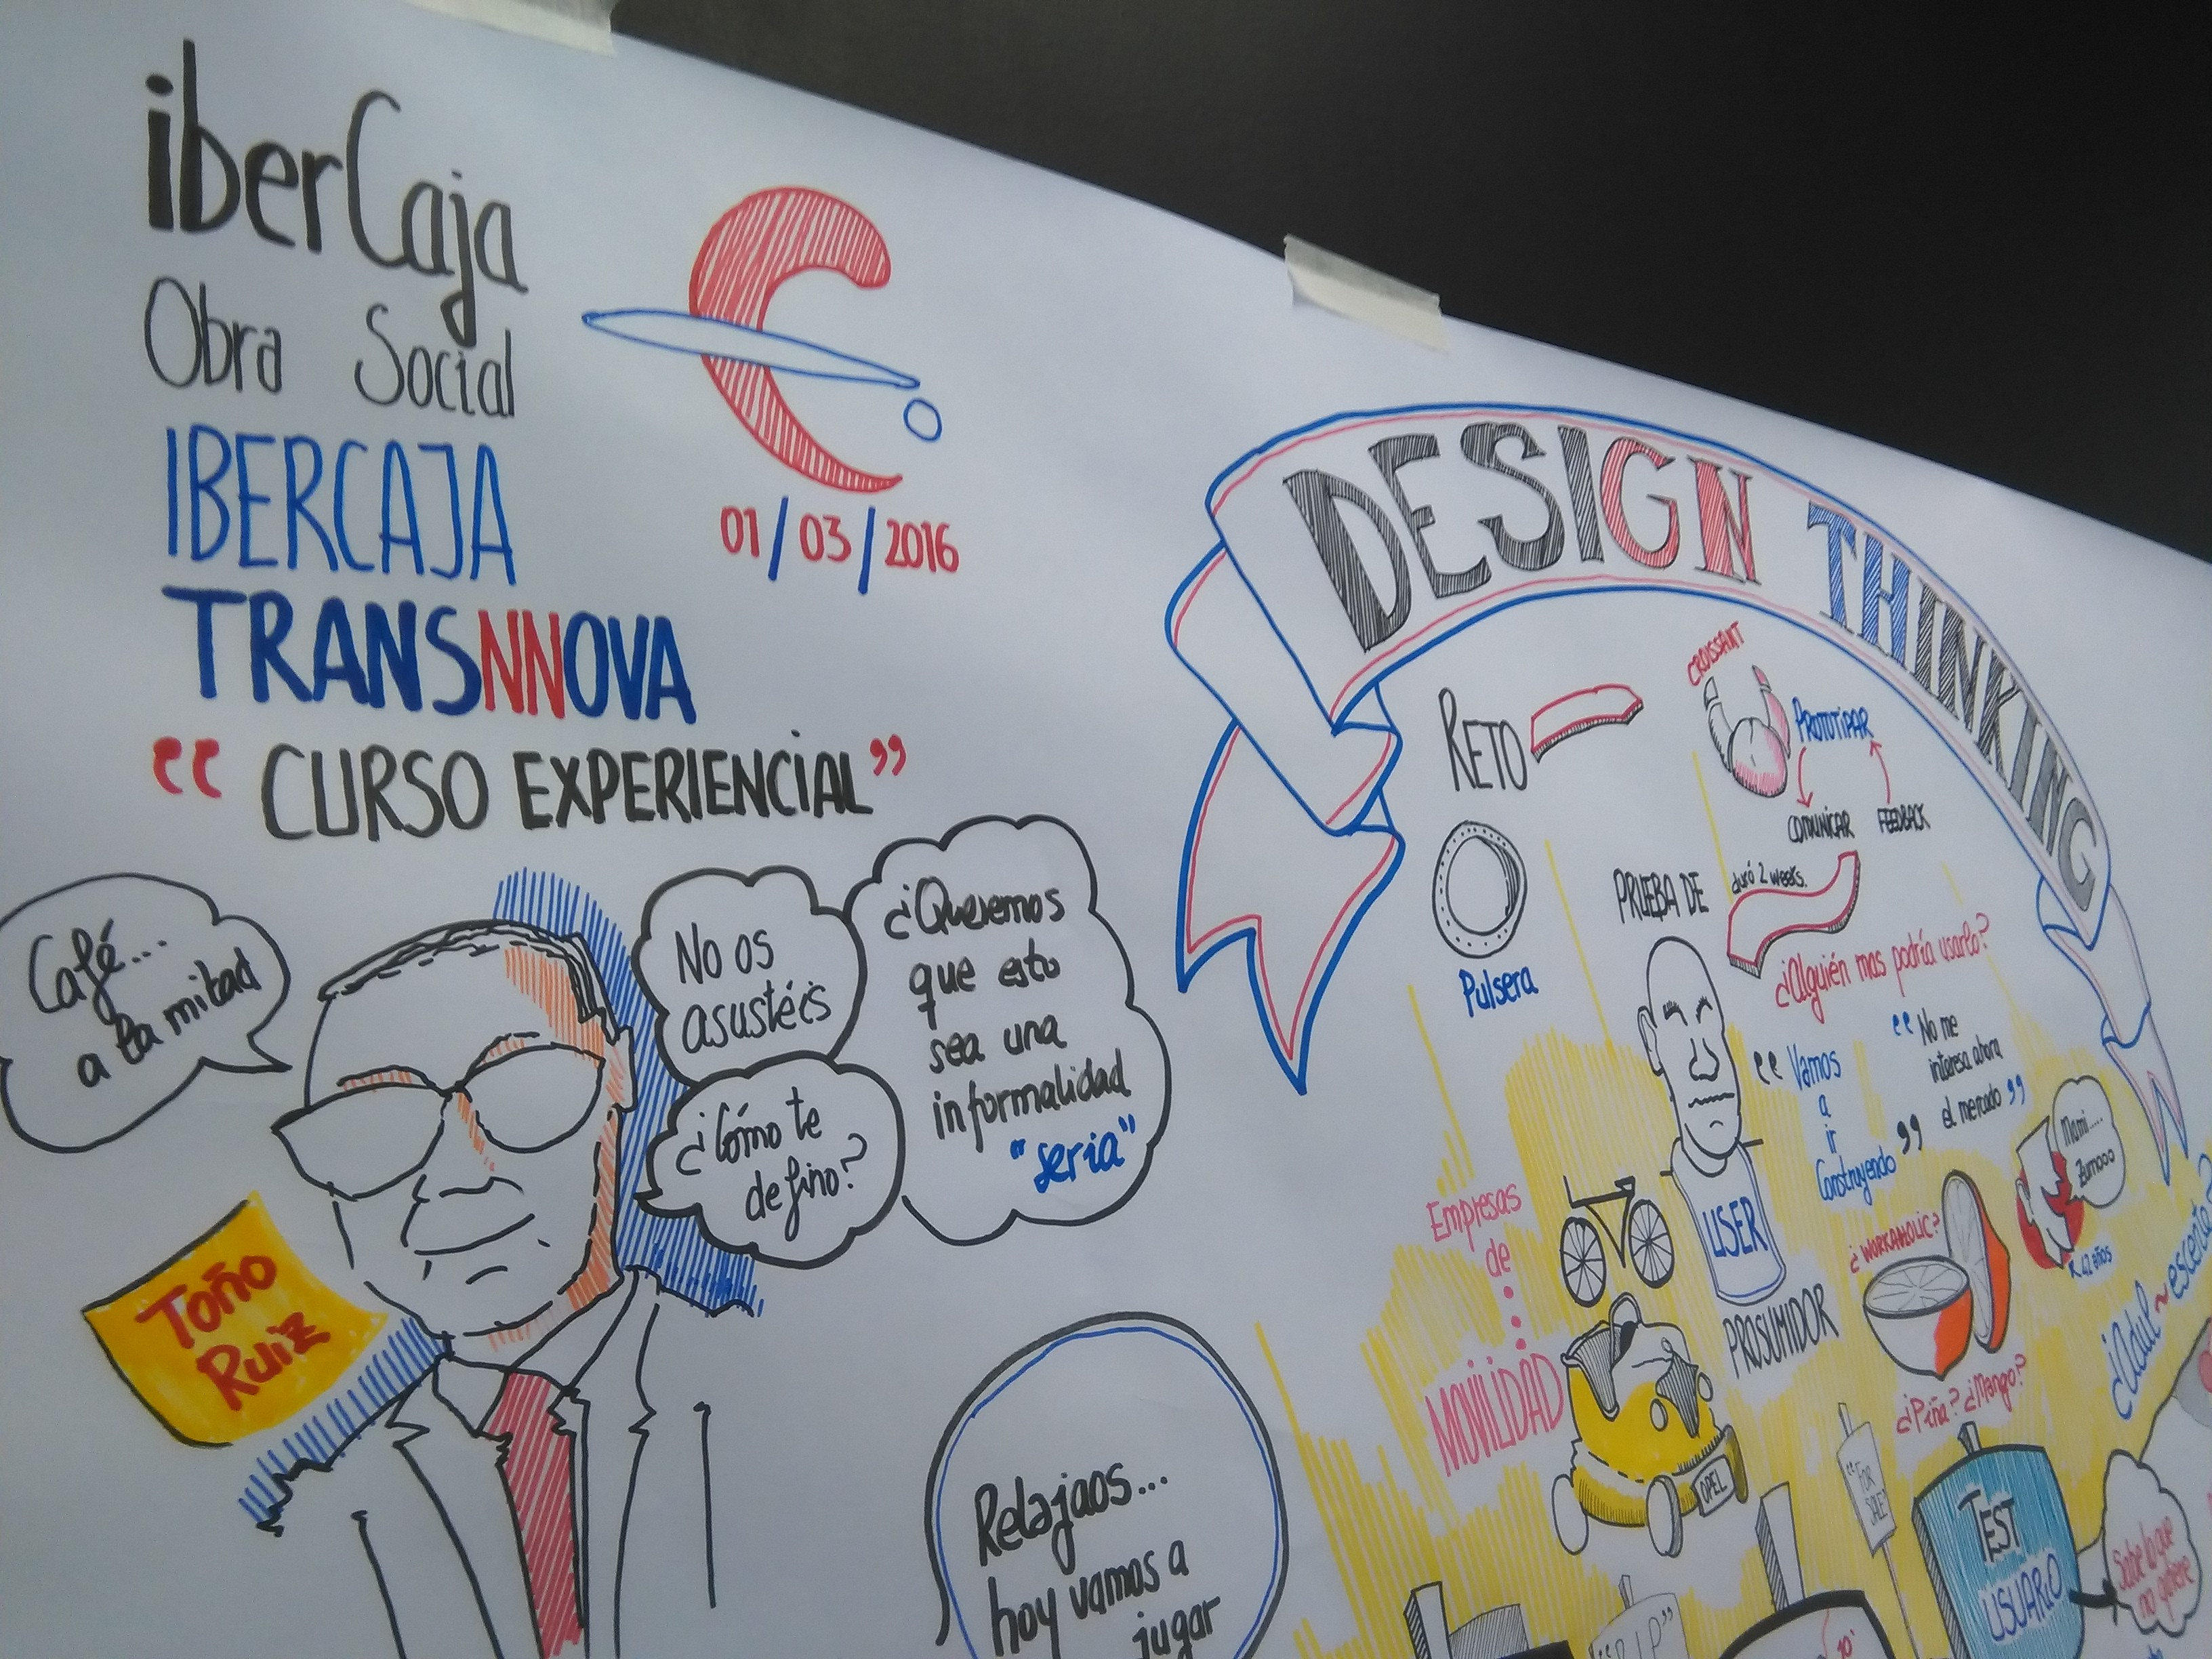 GraphicRecording_Ibercaja_5